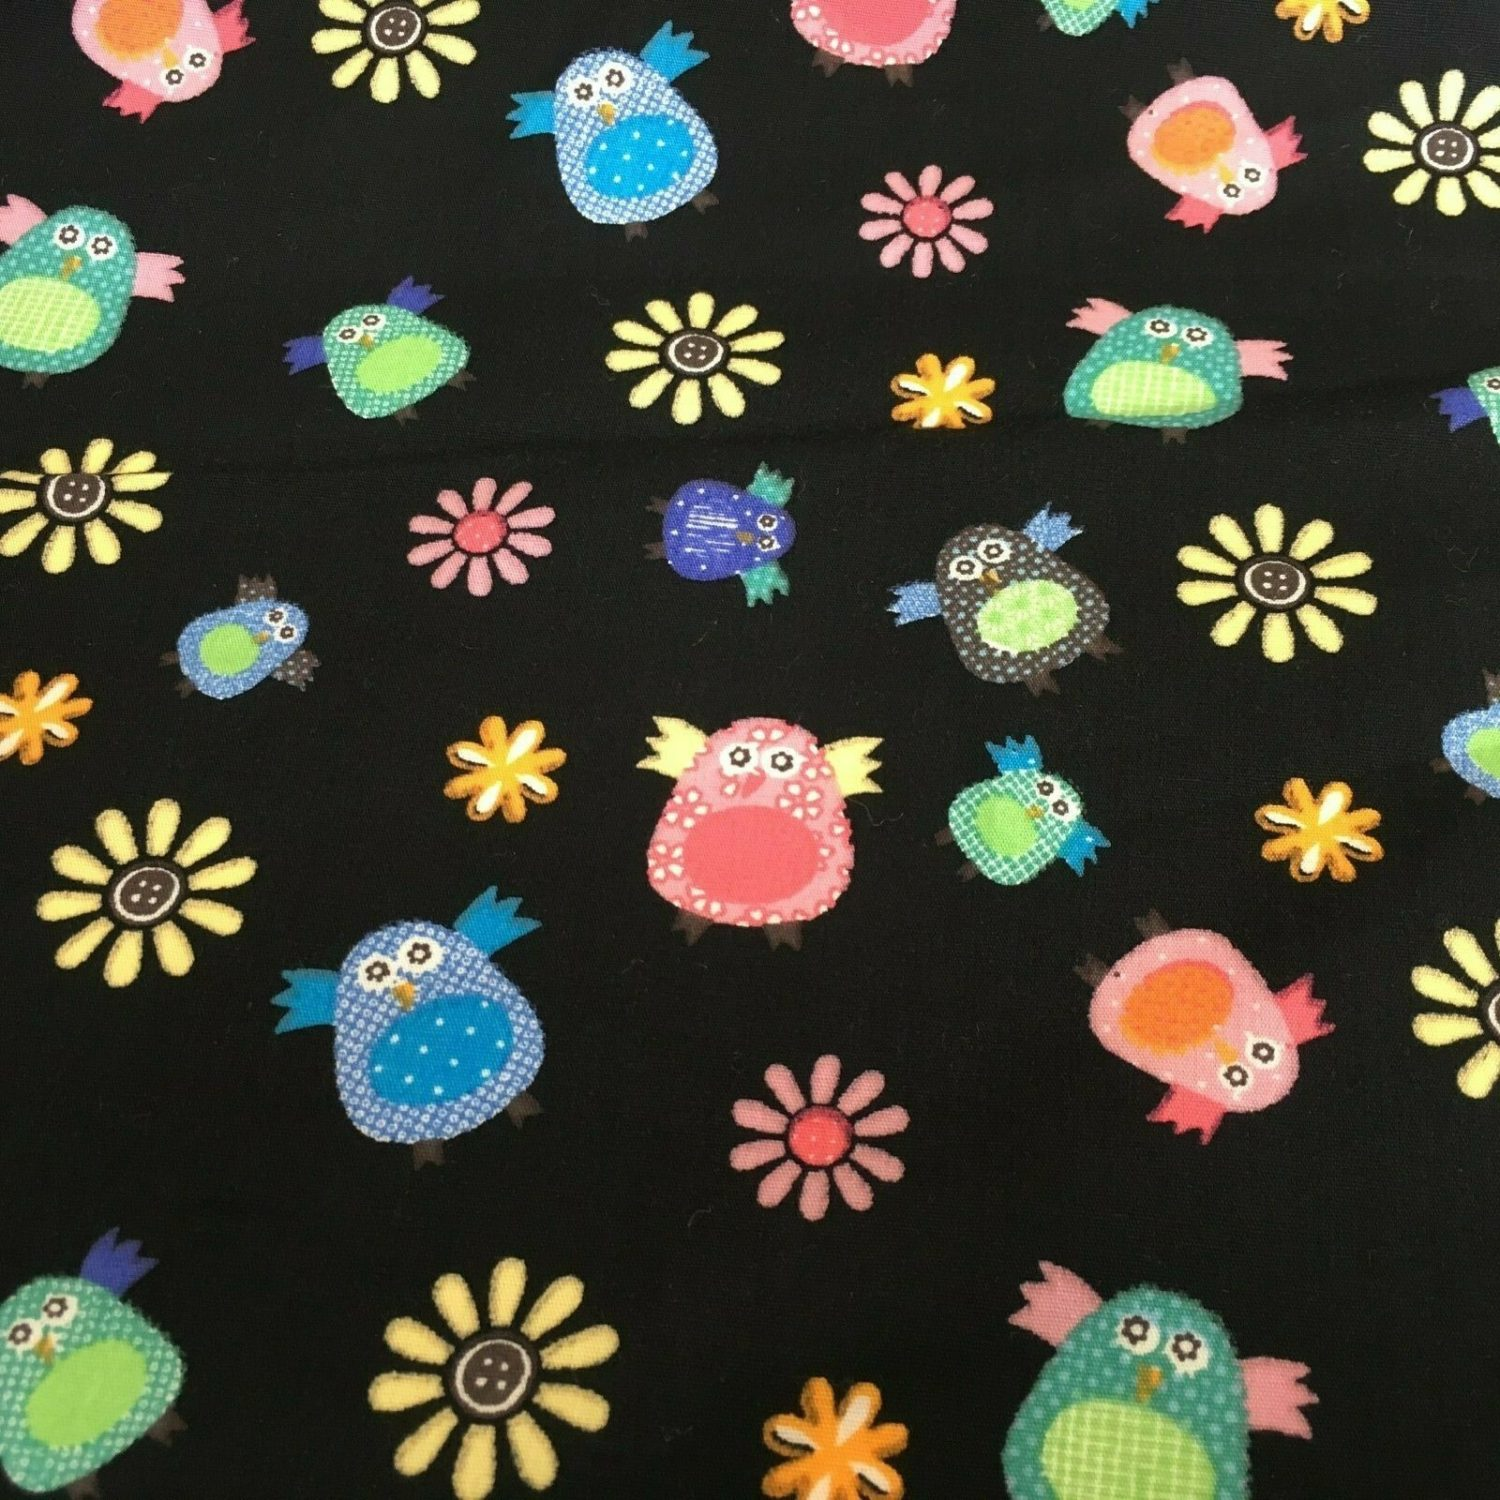 SPIDERS POLY COTTON FABRIC IDEAL FOR HALLOWEEN 112 cm width